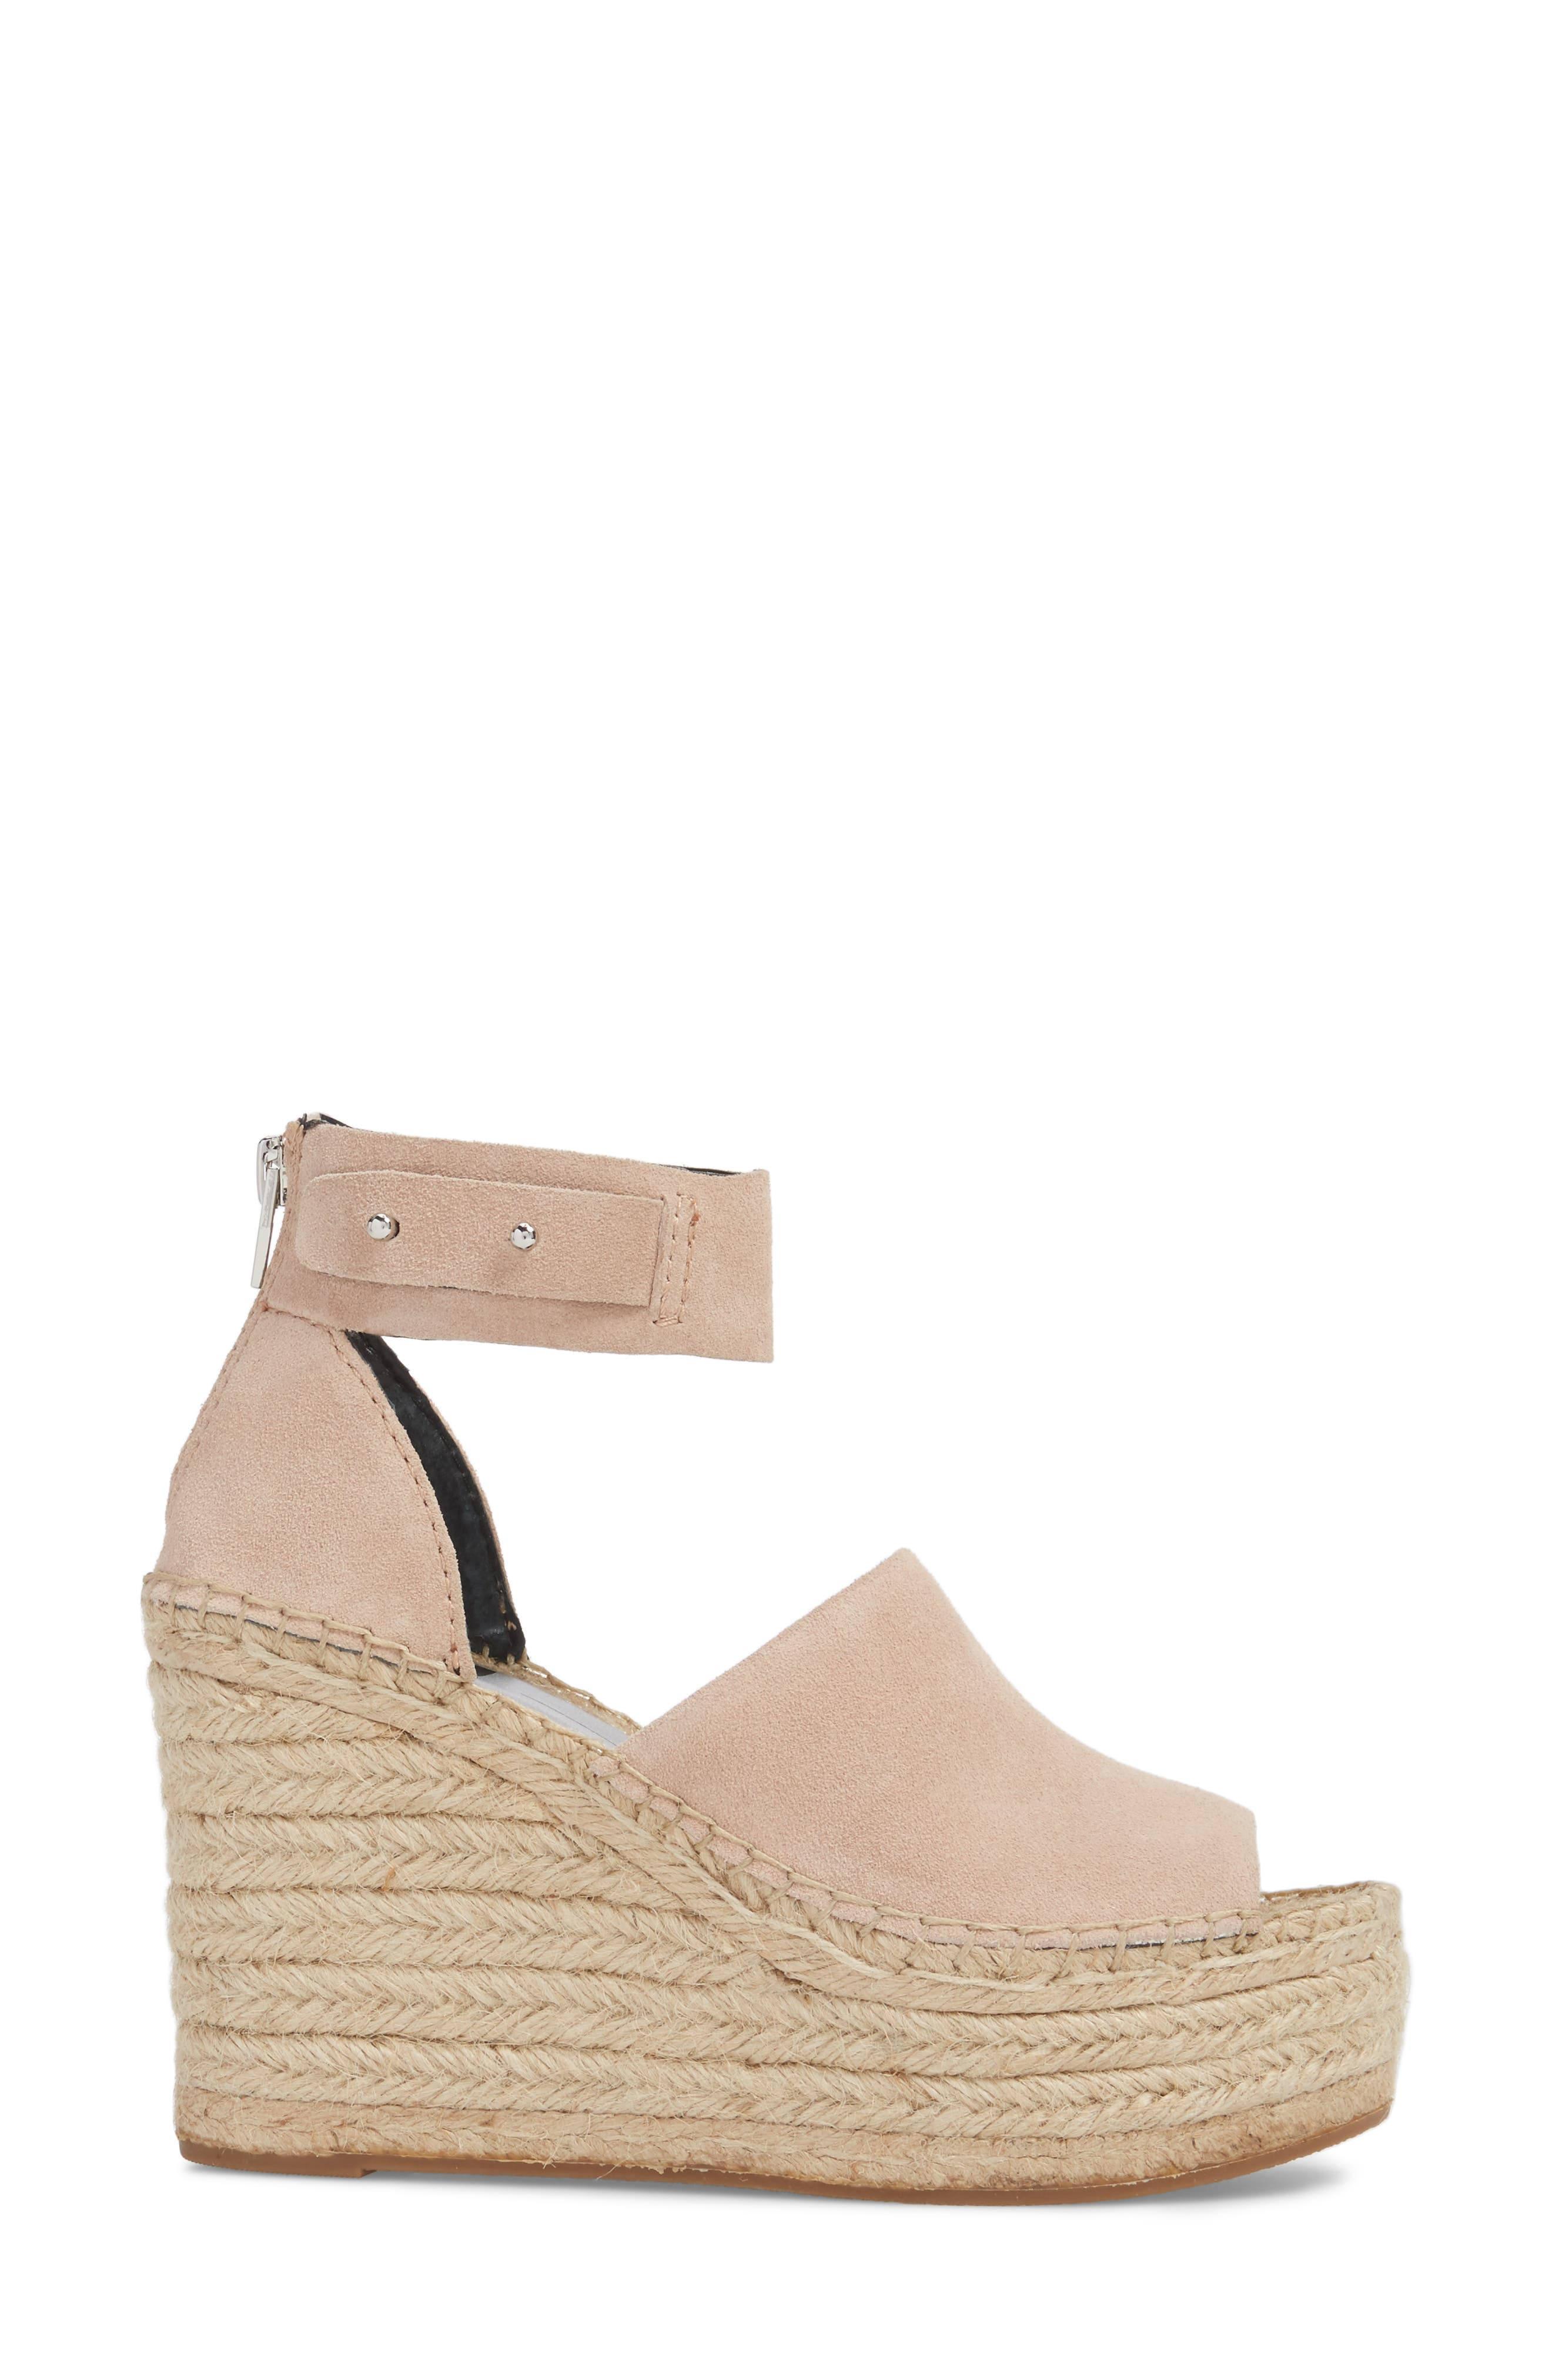 DOLCE VITA, Straw Wedge Espadrille Sandal, Alternate thumbnail 3, color, BLUSH